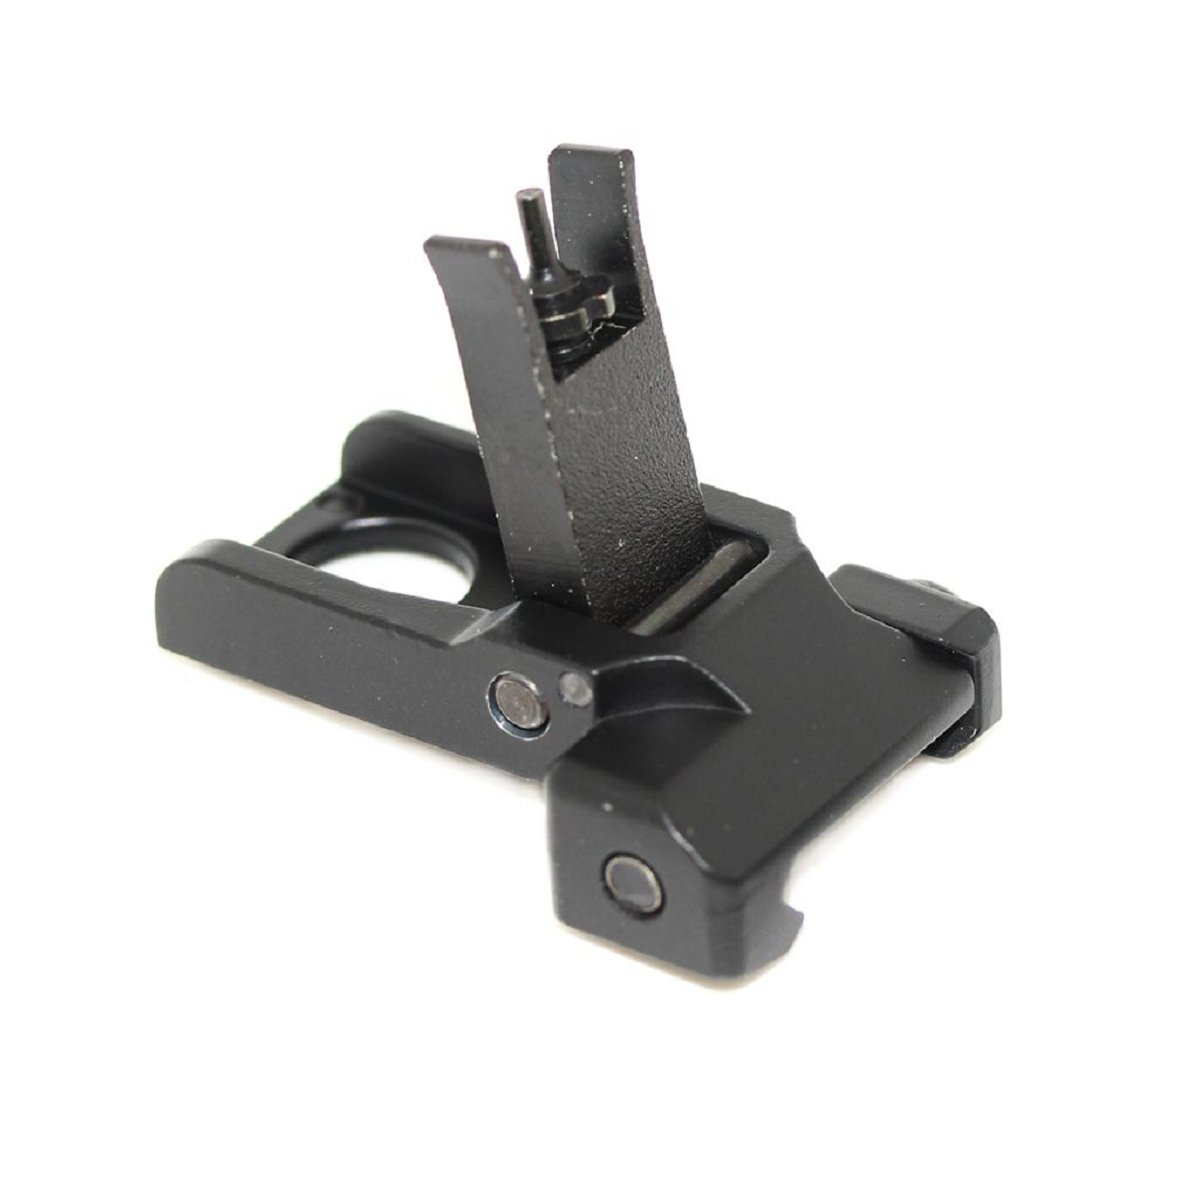 Airsoft D-Boys Military 300M Flip Up Front Sight